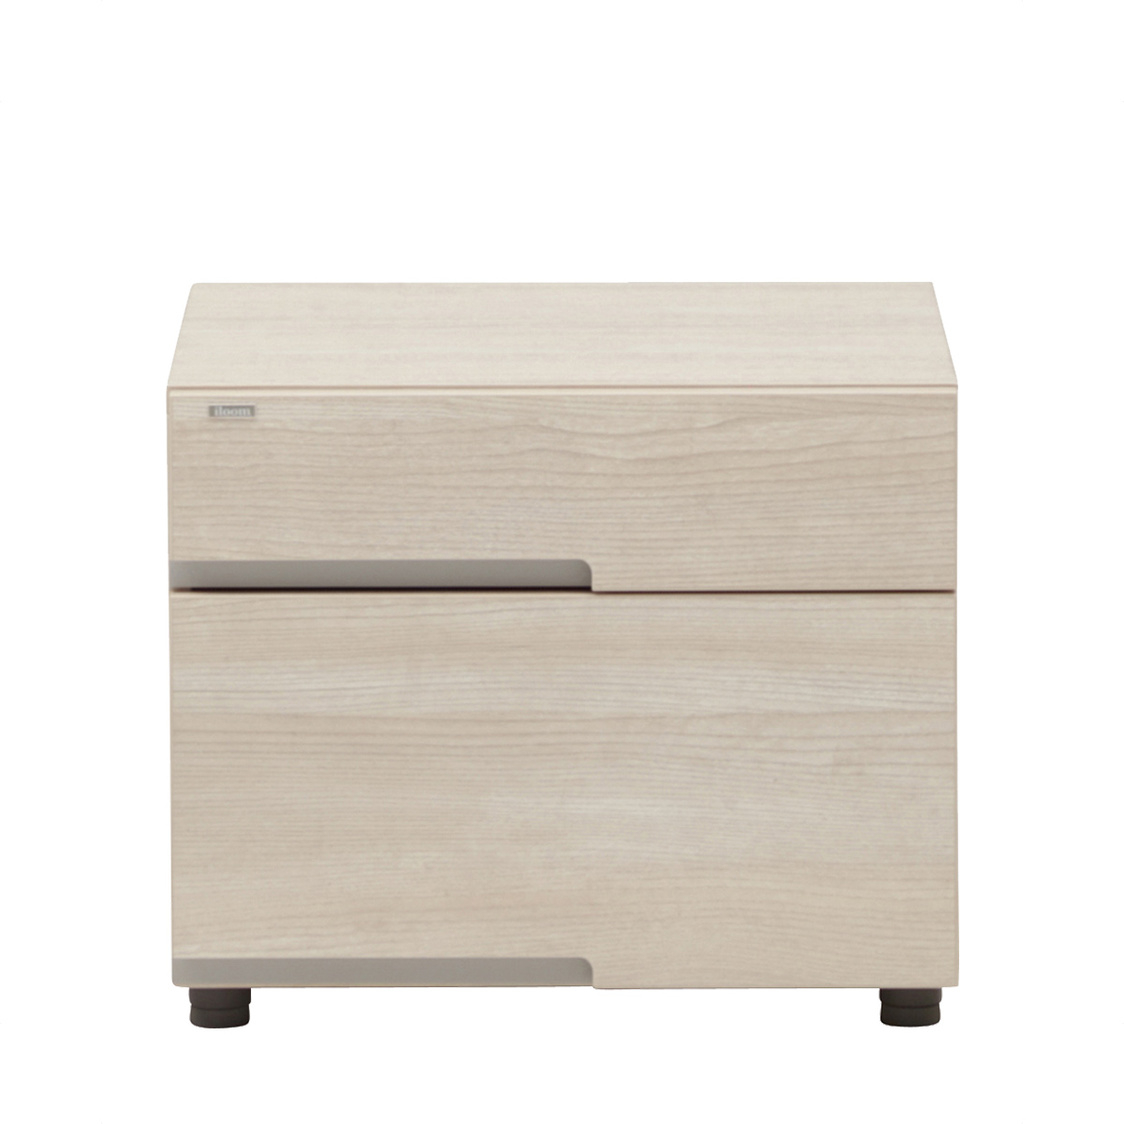 Iloom 500W Quo 2-Story Side Table HP110516-OS